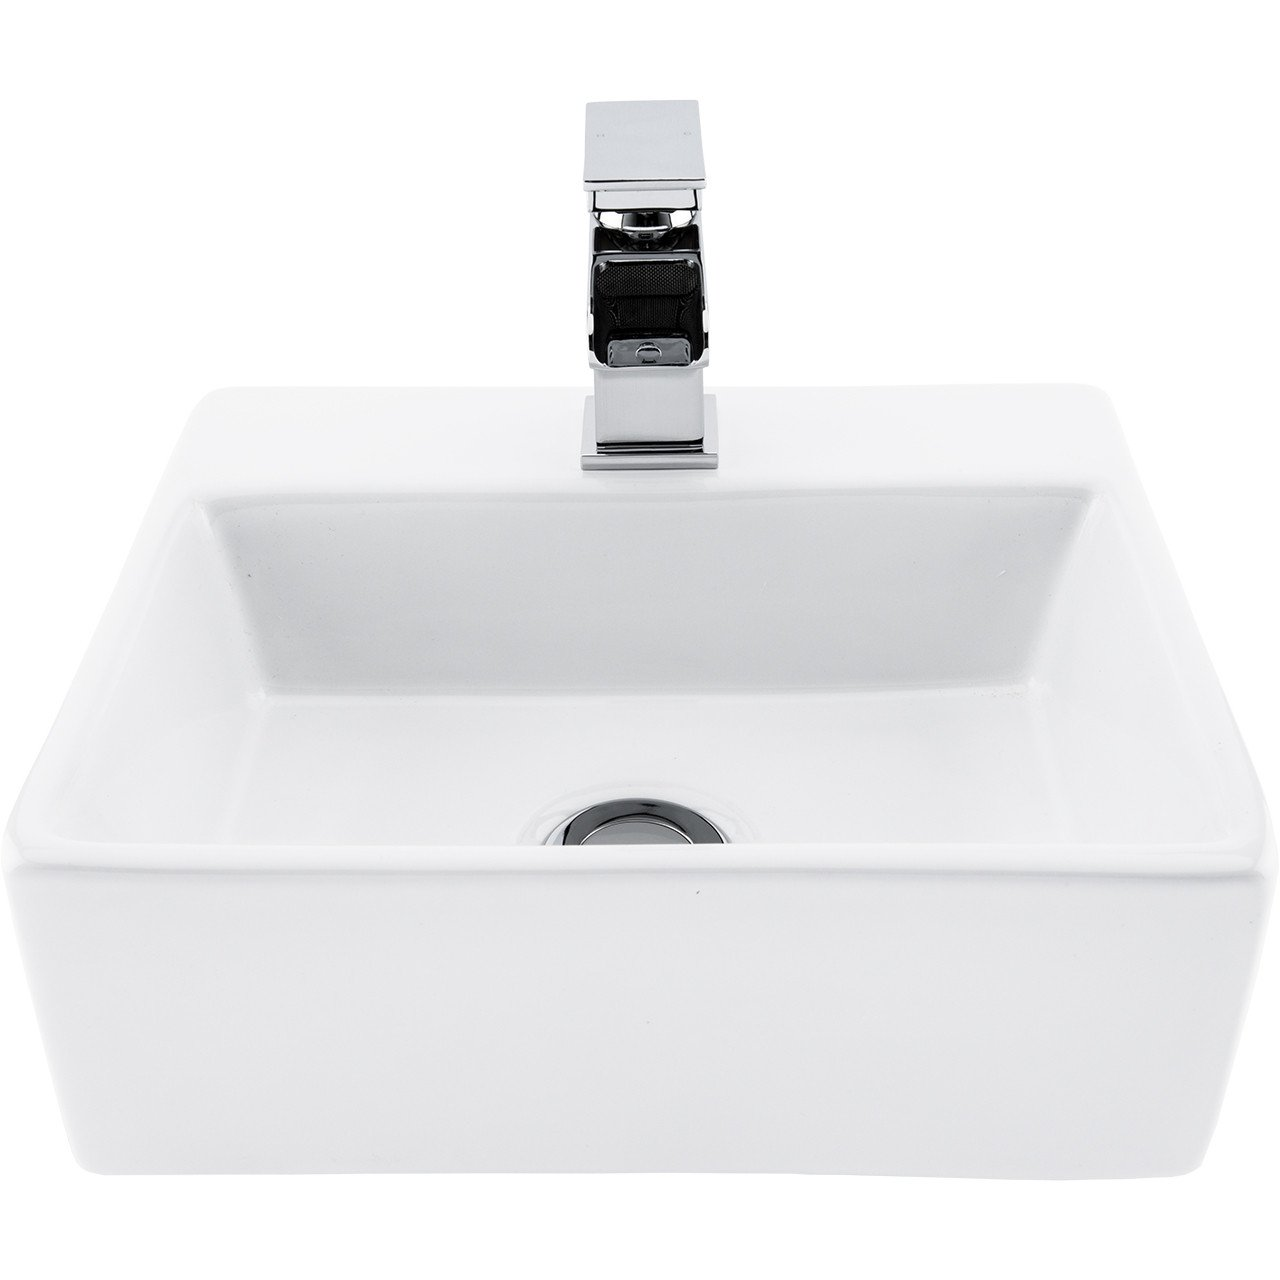 Joane Wall Basin